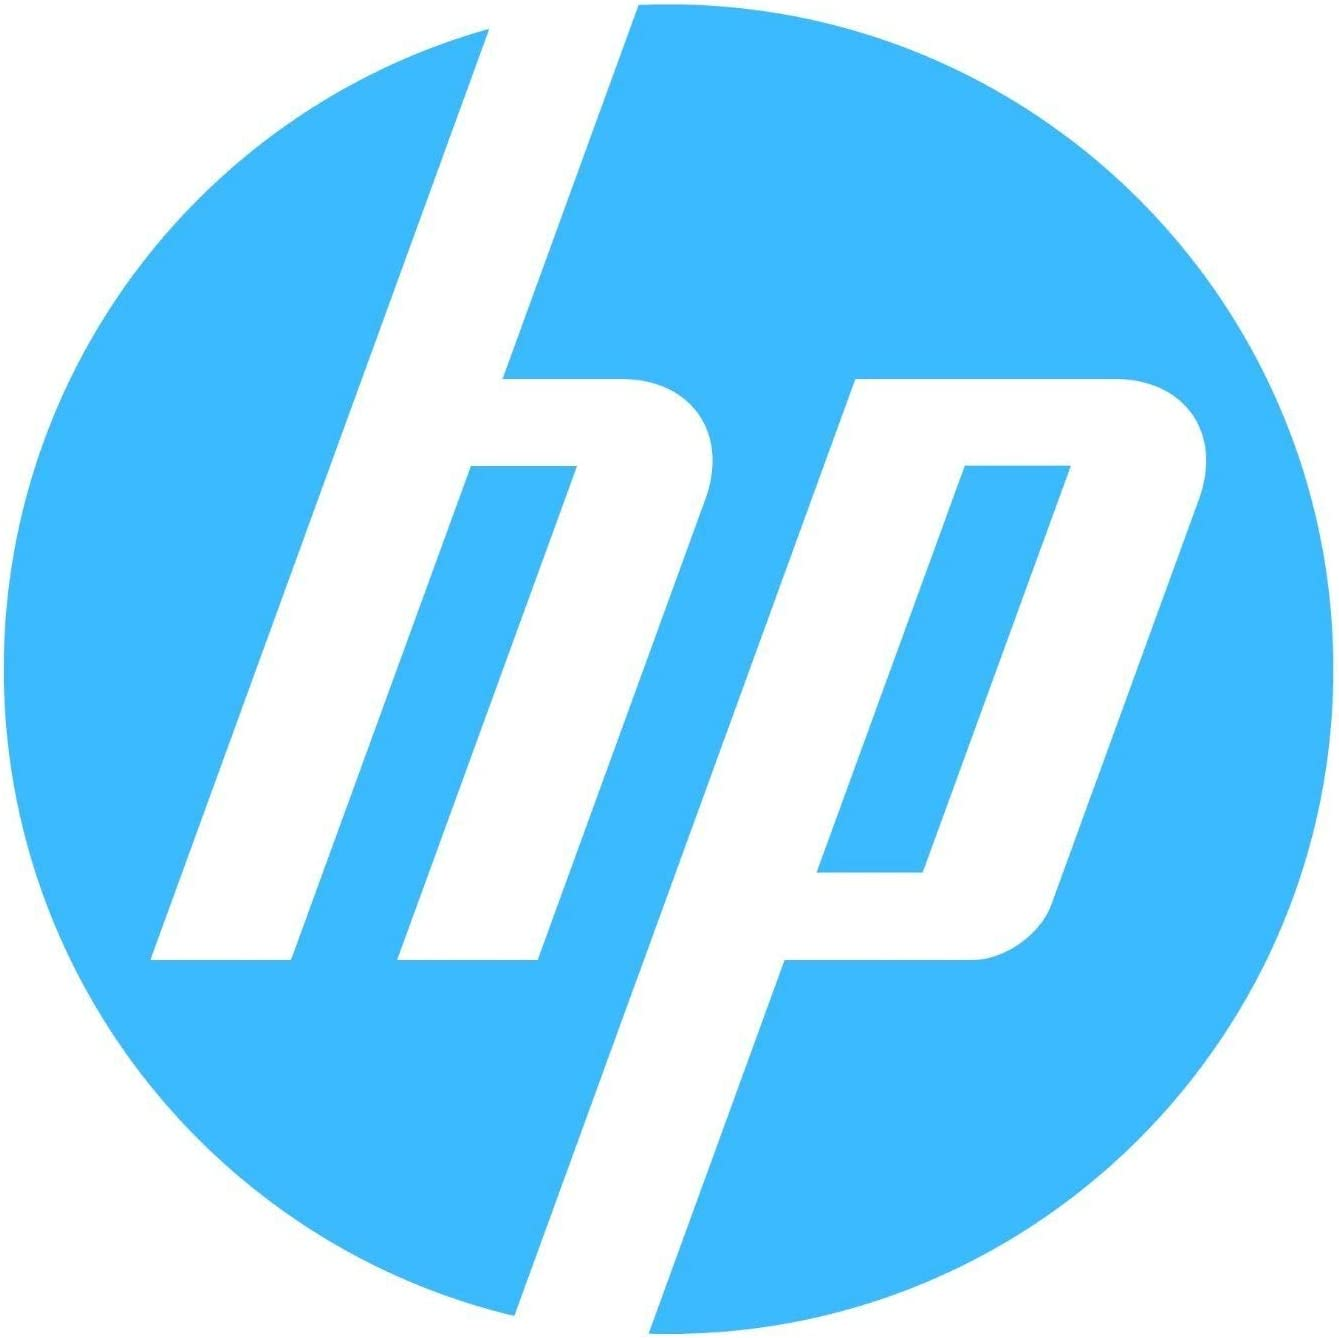 HP 514217-001 514217-001 HP Hard drive backplane power cable - 16.9 INCHES (Certified Refurbished)